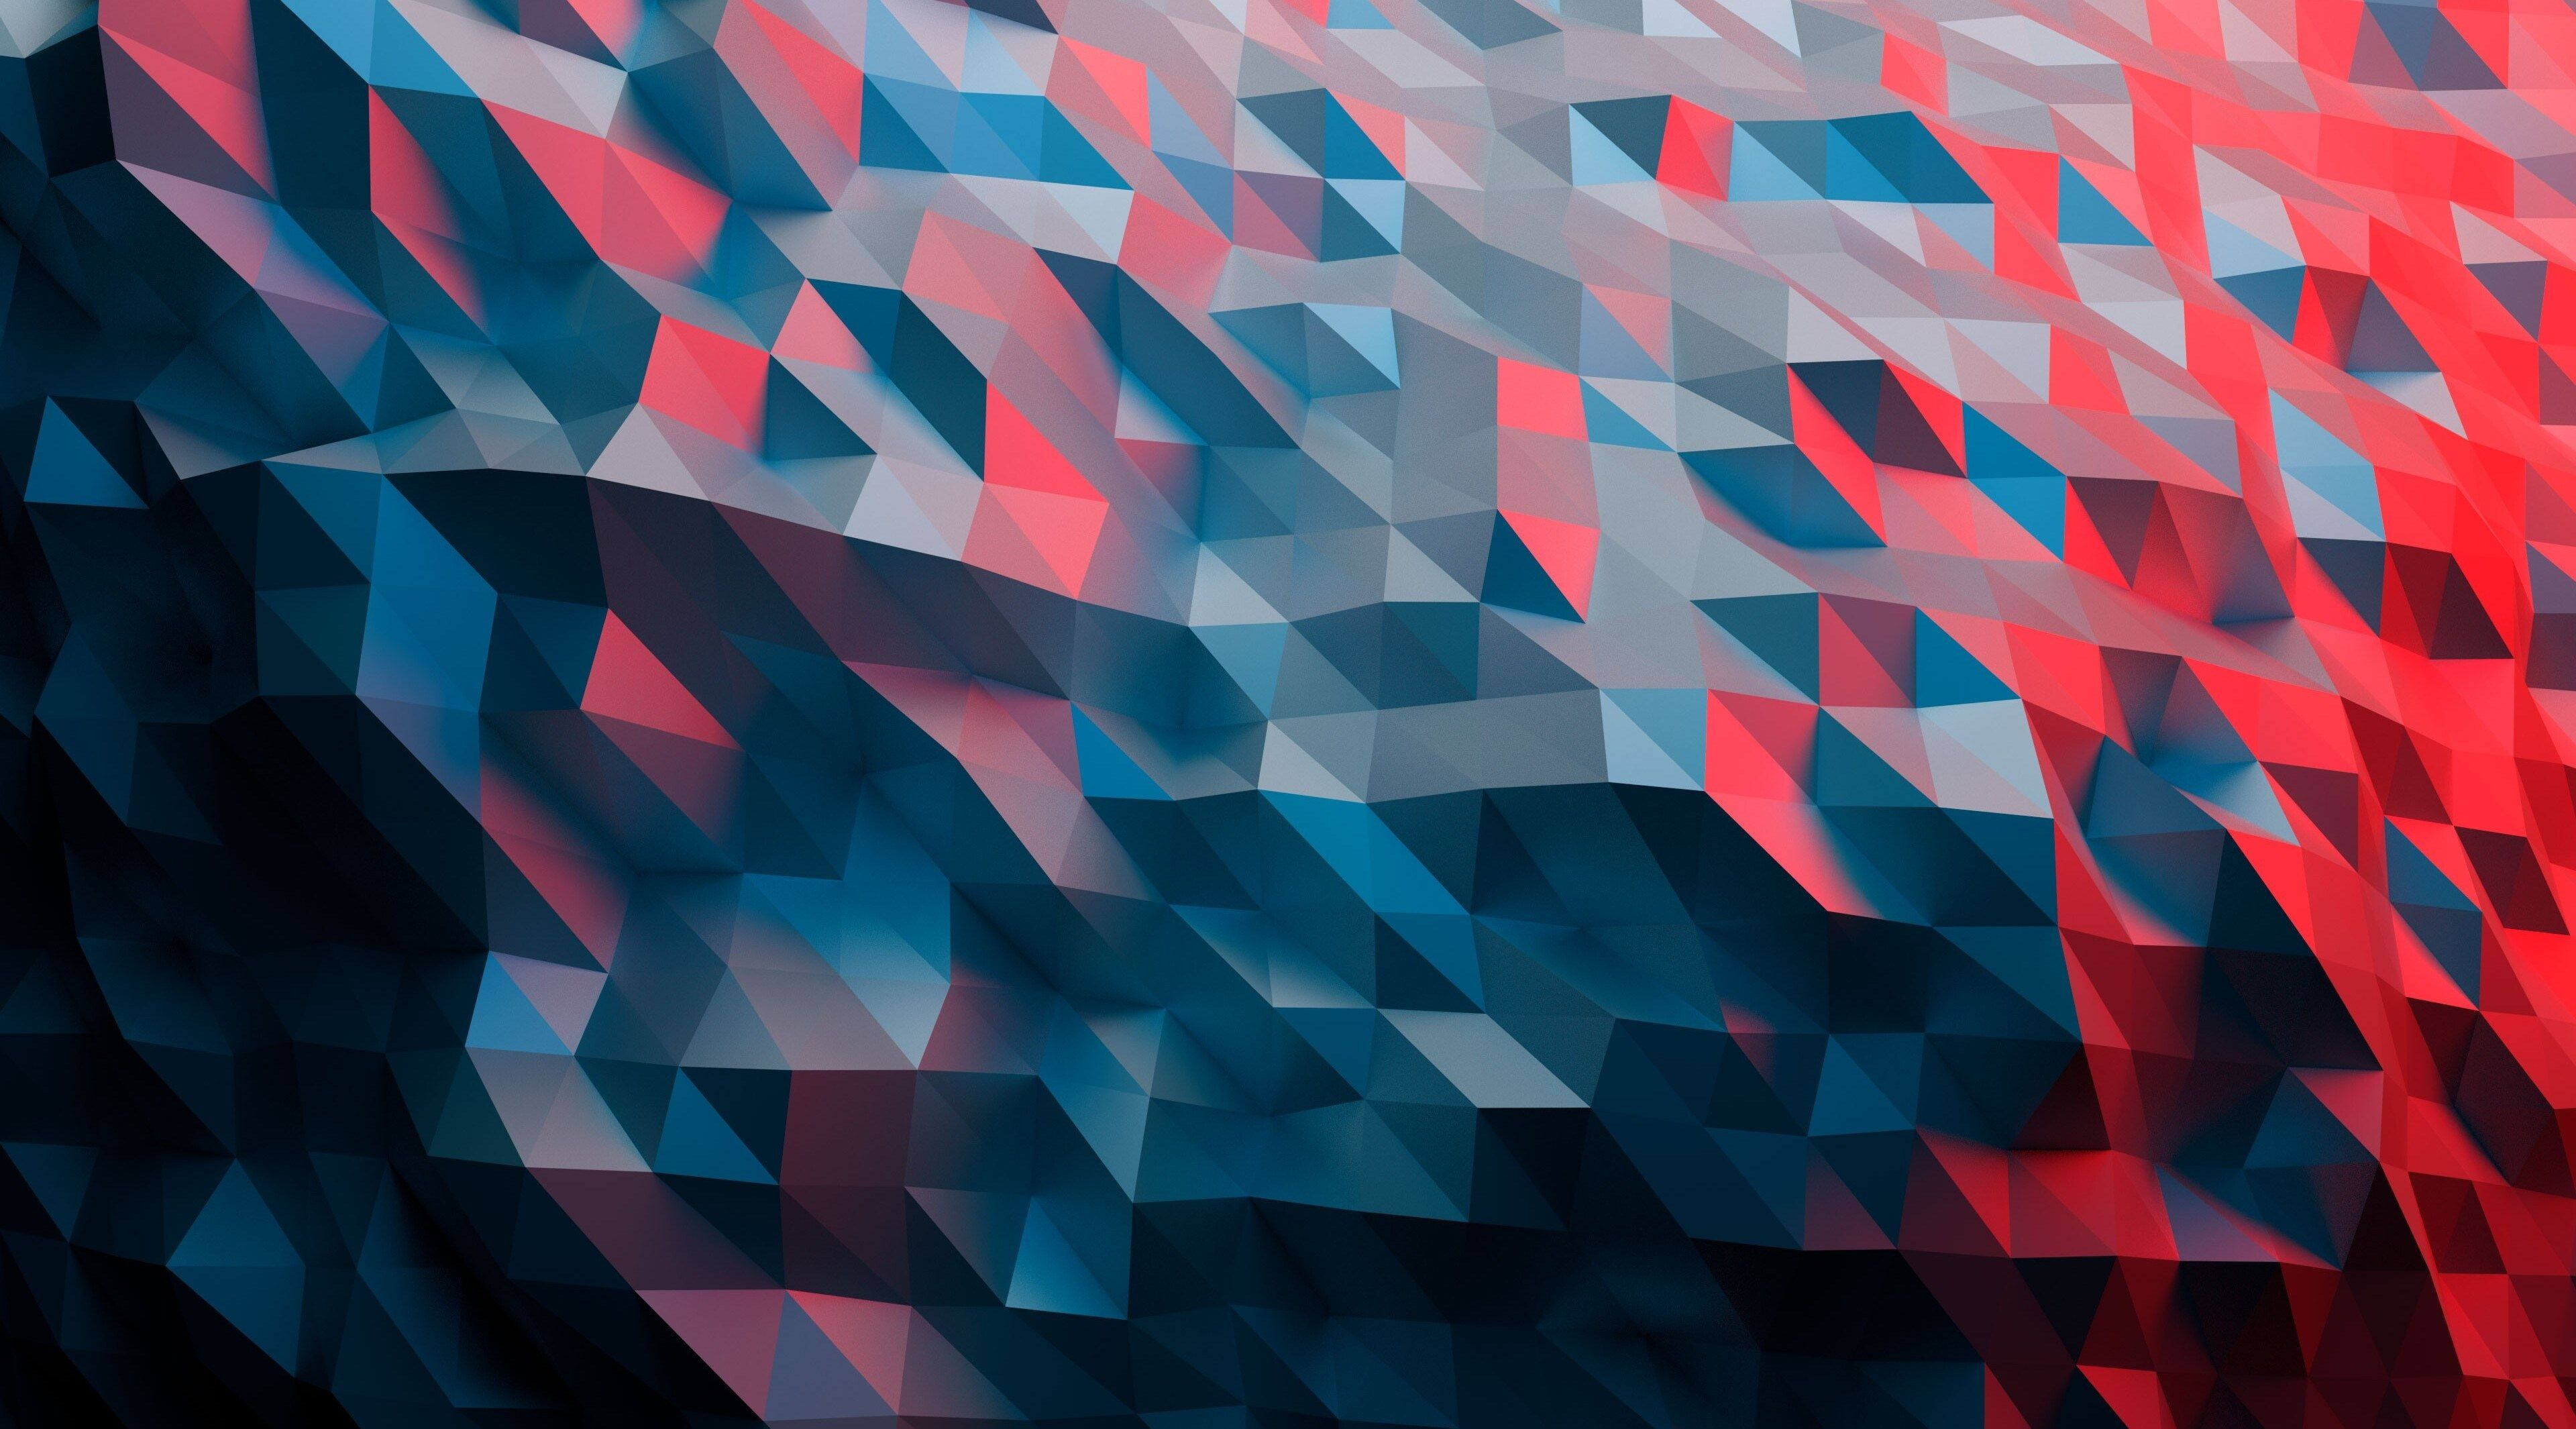 3840x2130 Polygon 4k Image Of Best Wallpaper Abstract Wallpaper Abstract 3840x2160 Wallpaper